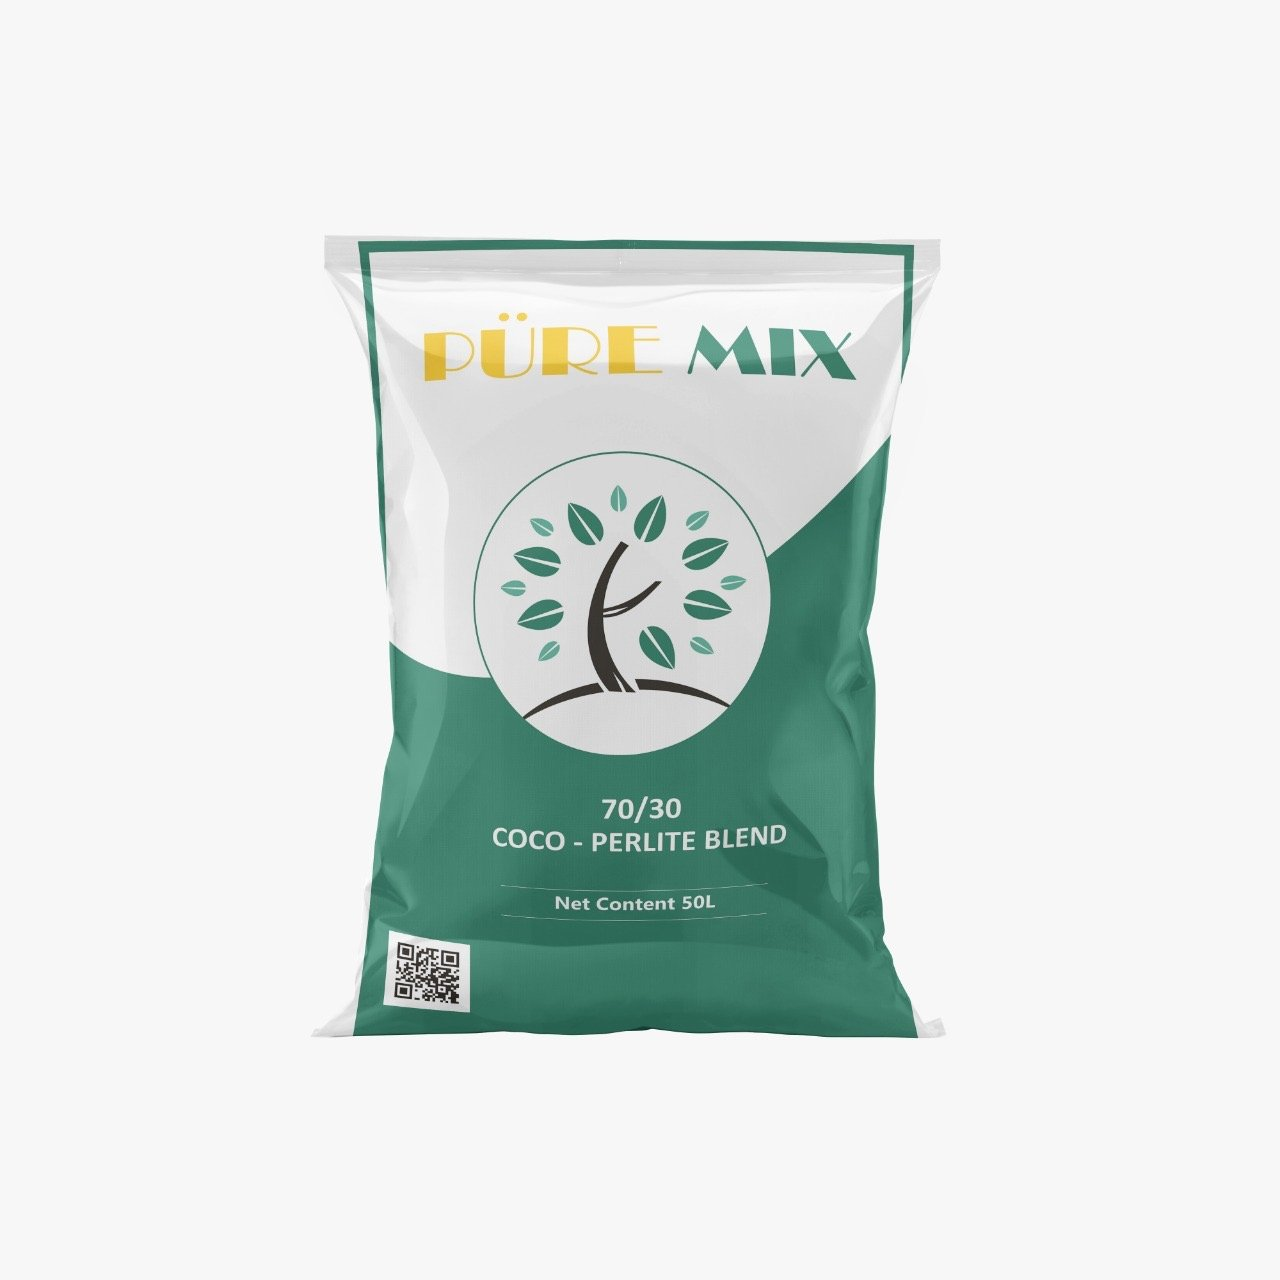 The Coco Depot Pure Mix 70/30 Coco Perlite Mix (50L)